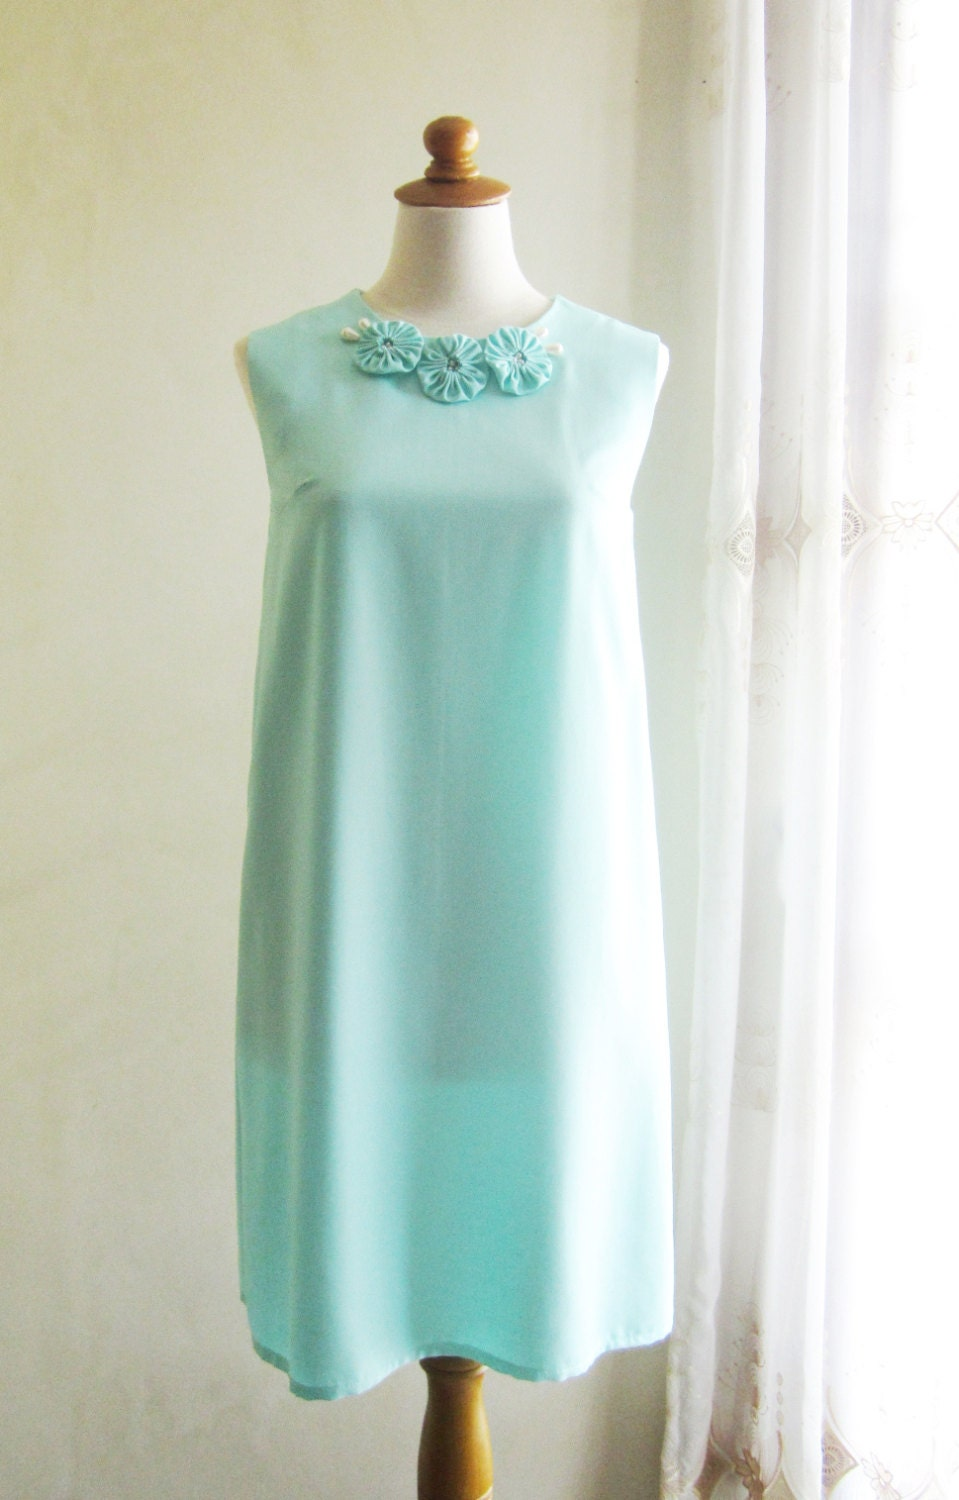 Sleeveless Linen Dress in Mint Color with Fabric Flower and Pearl Embellishment - CielleBoutique